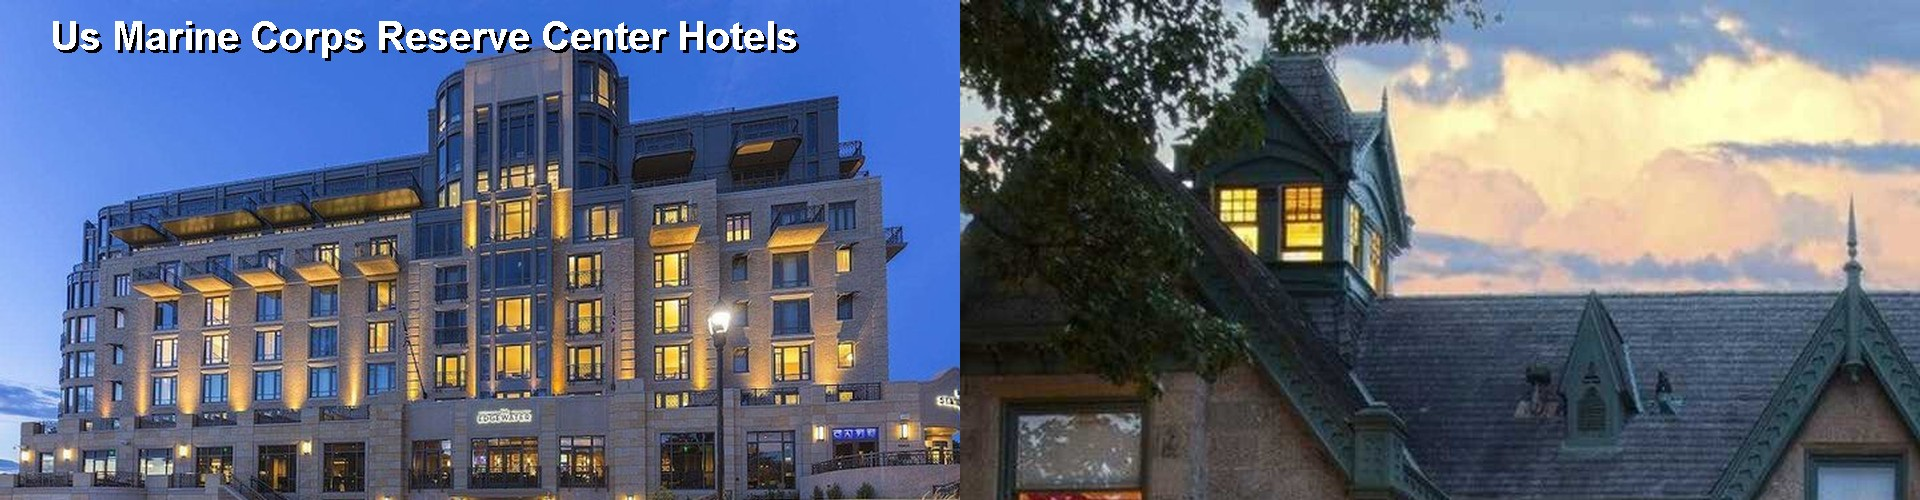 5 Best Hotels near Us Marine Corps Reserve Center